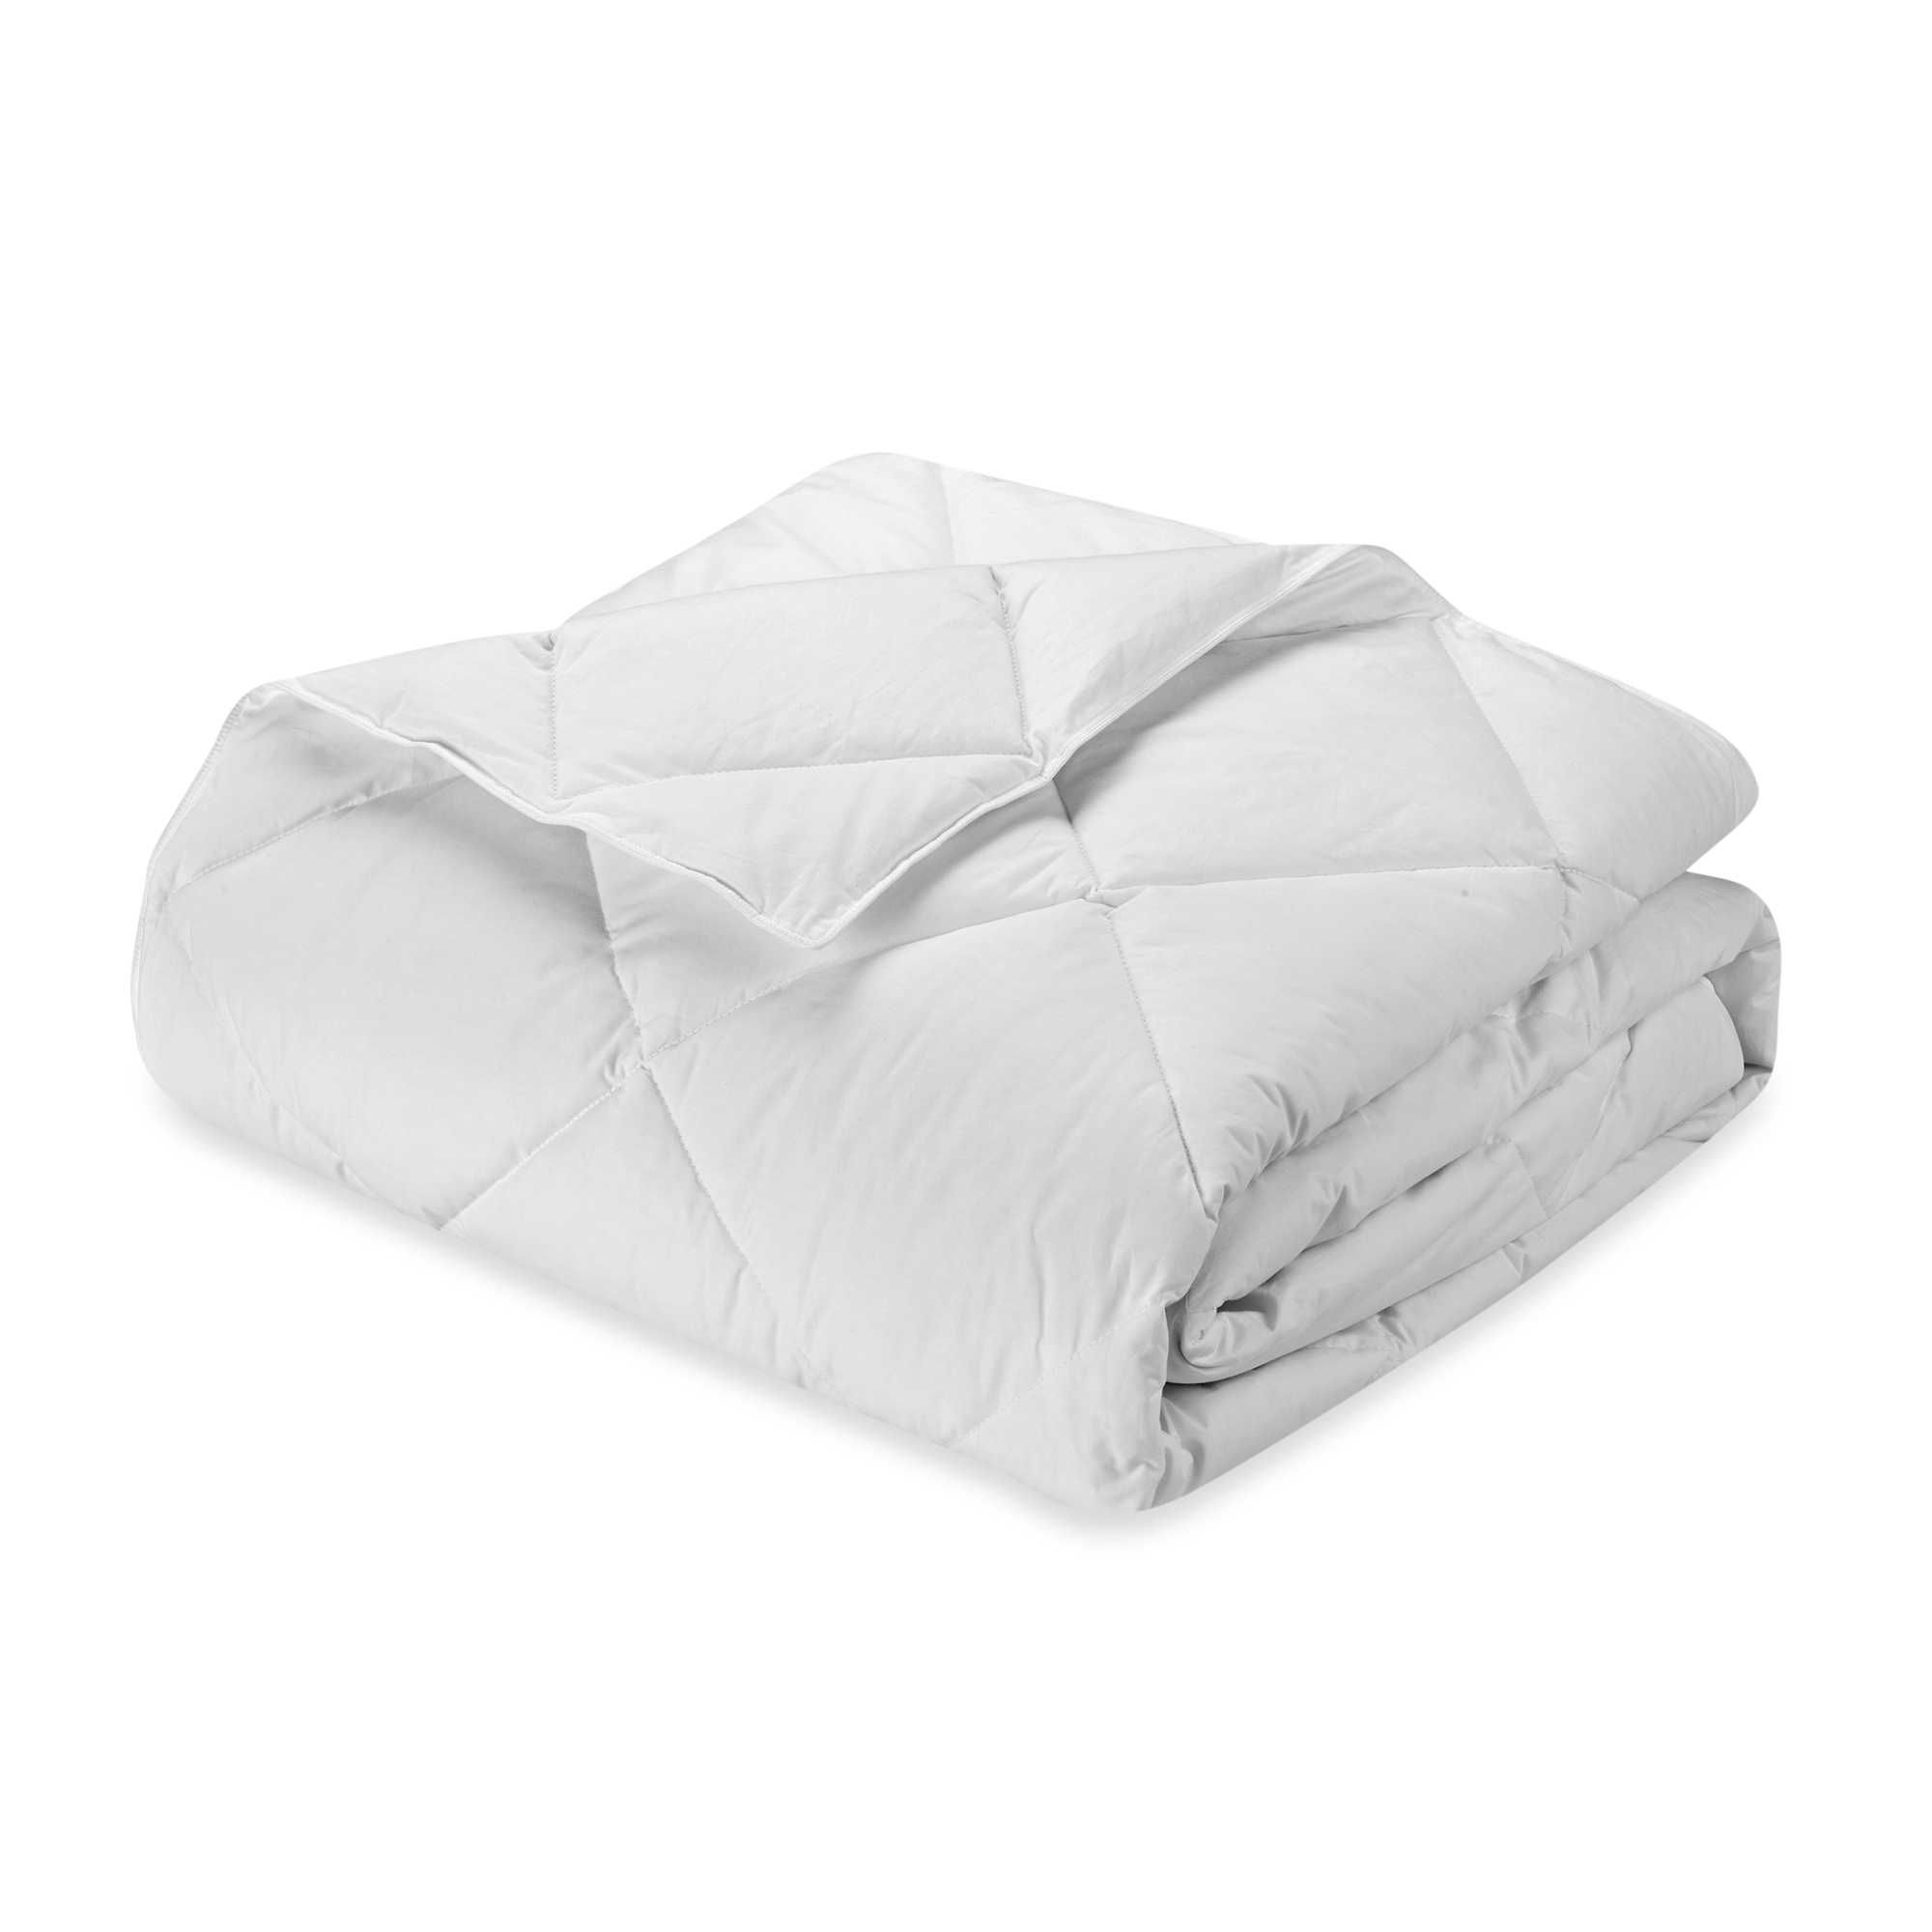 grand down classics bath bed reviews season home wayfair all at pdx reversible comforter alternative mgm